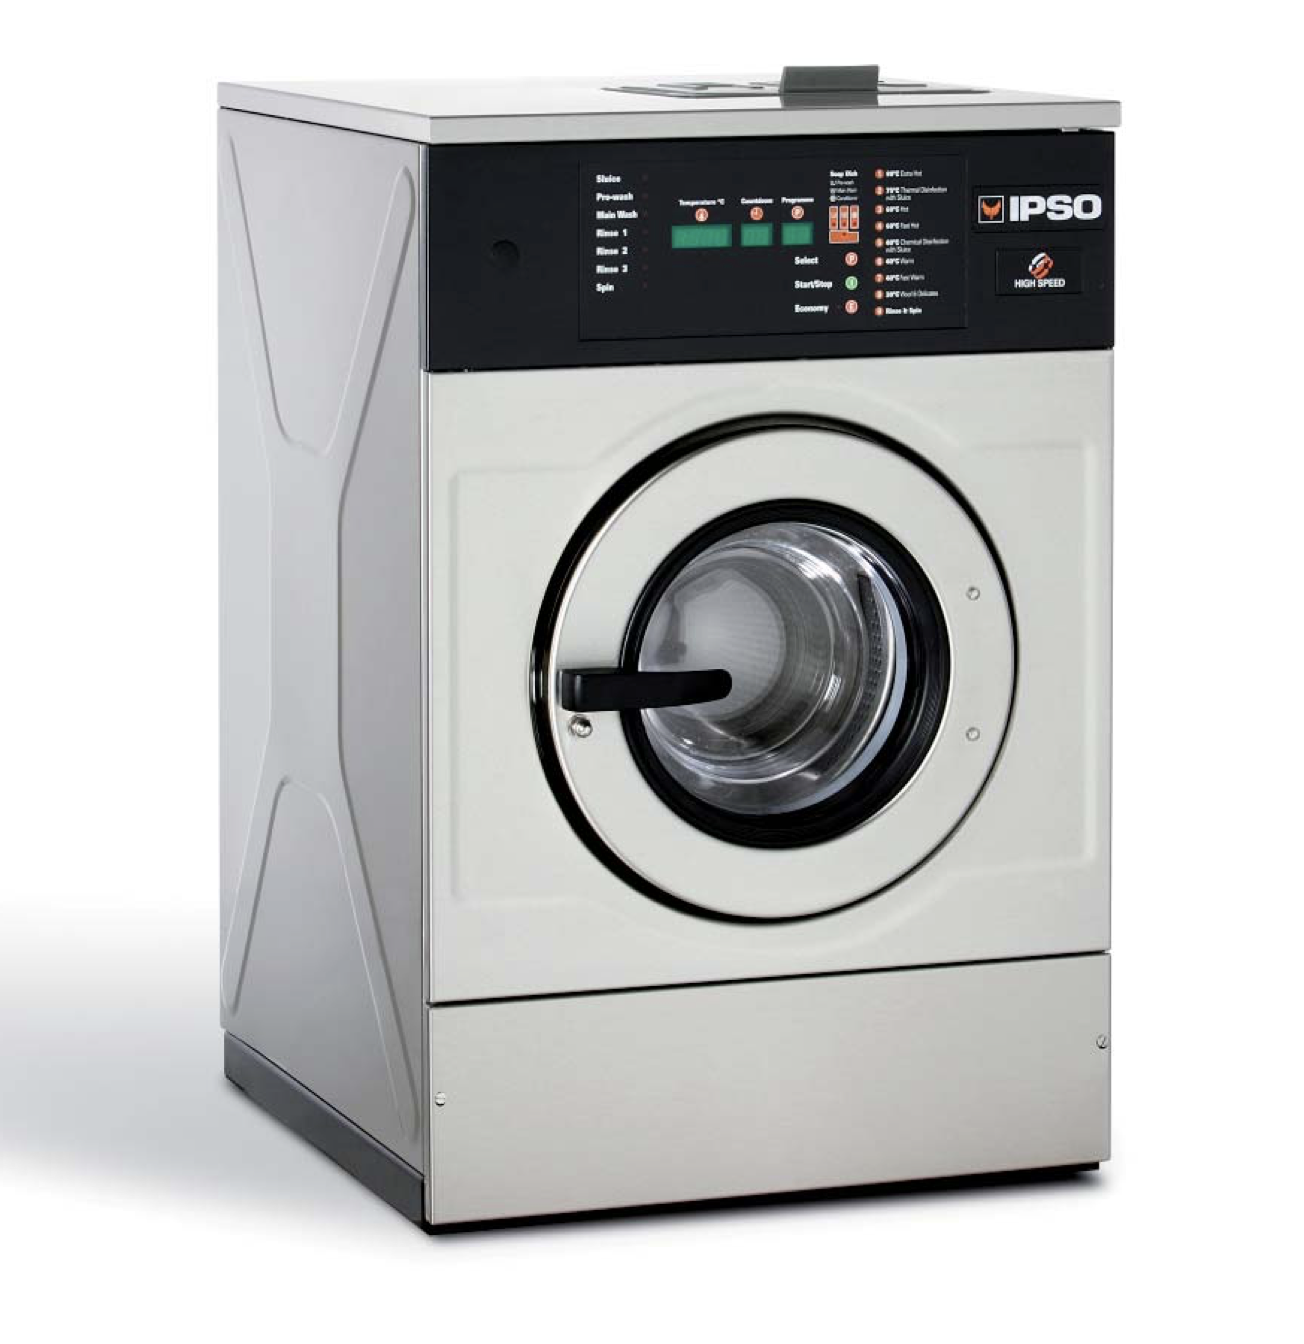 Ipso commercial washer Manual